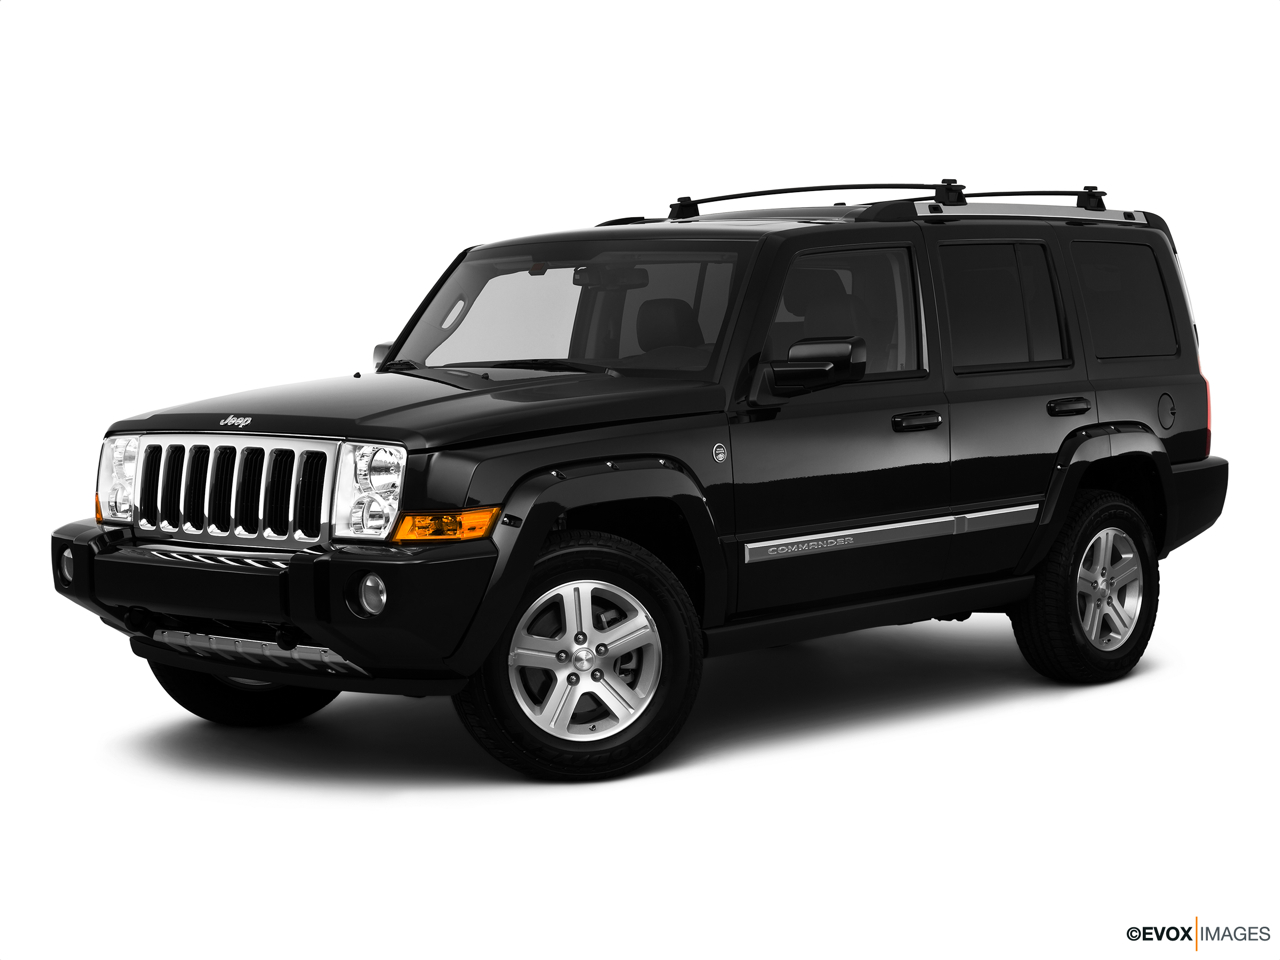 2010 Jeep Commander Limited 047 - no description